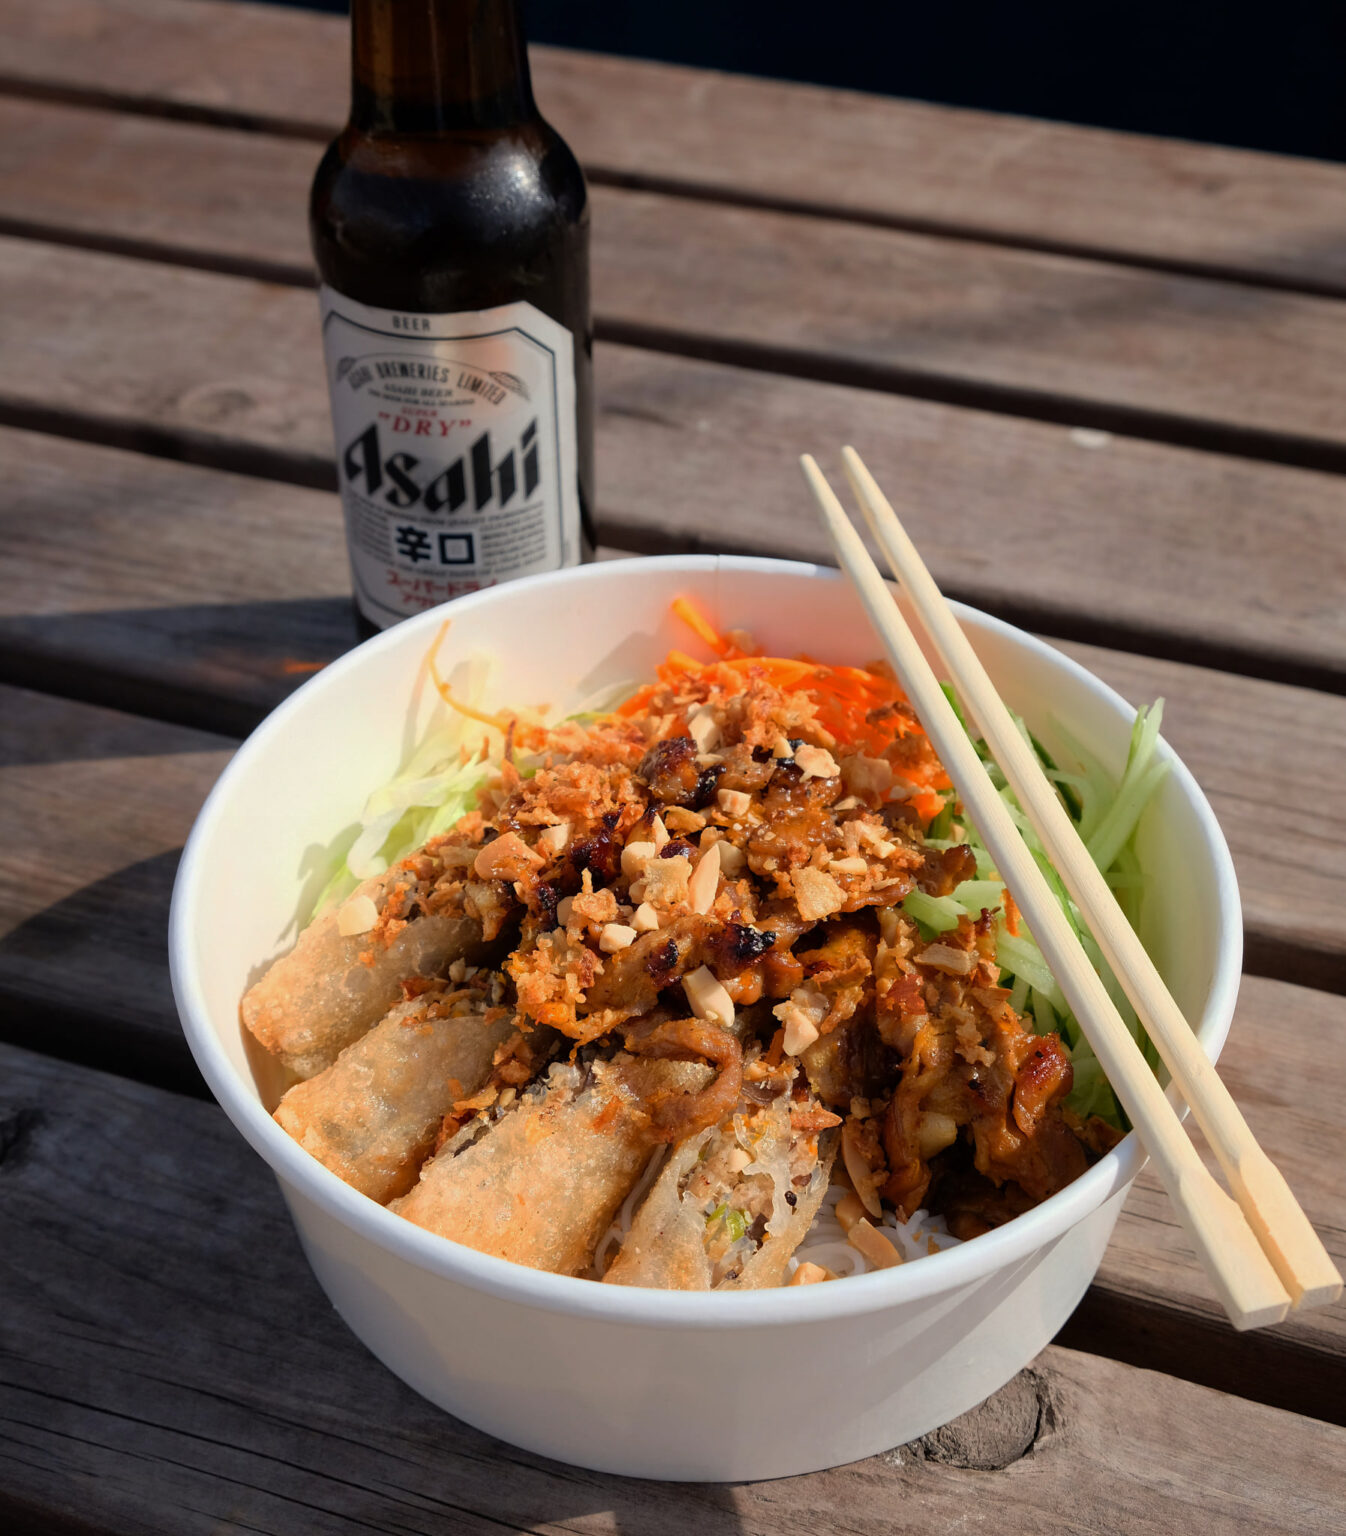 Bowl of Vietnamese food with chopsticks and bottle of beer.